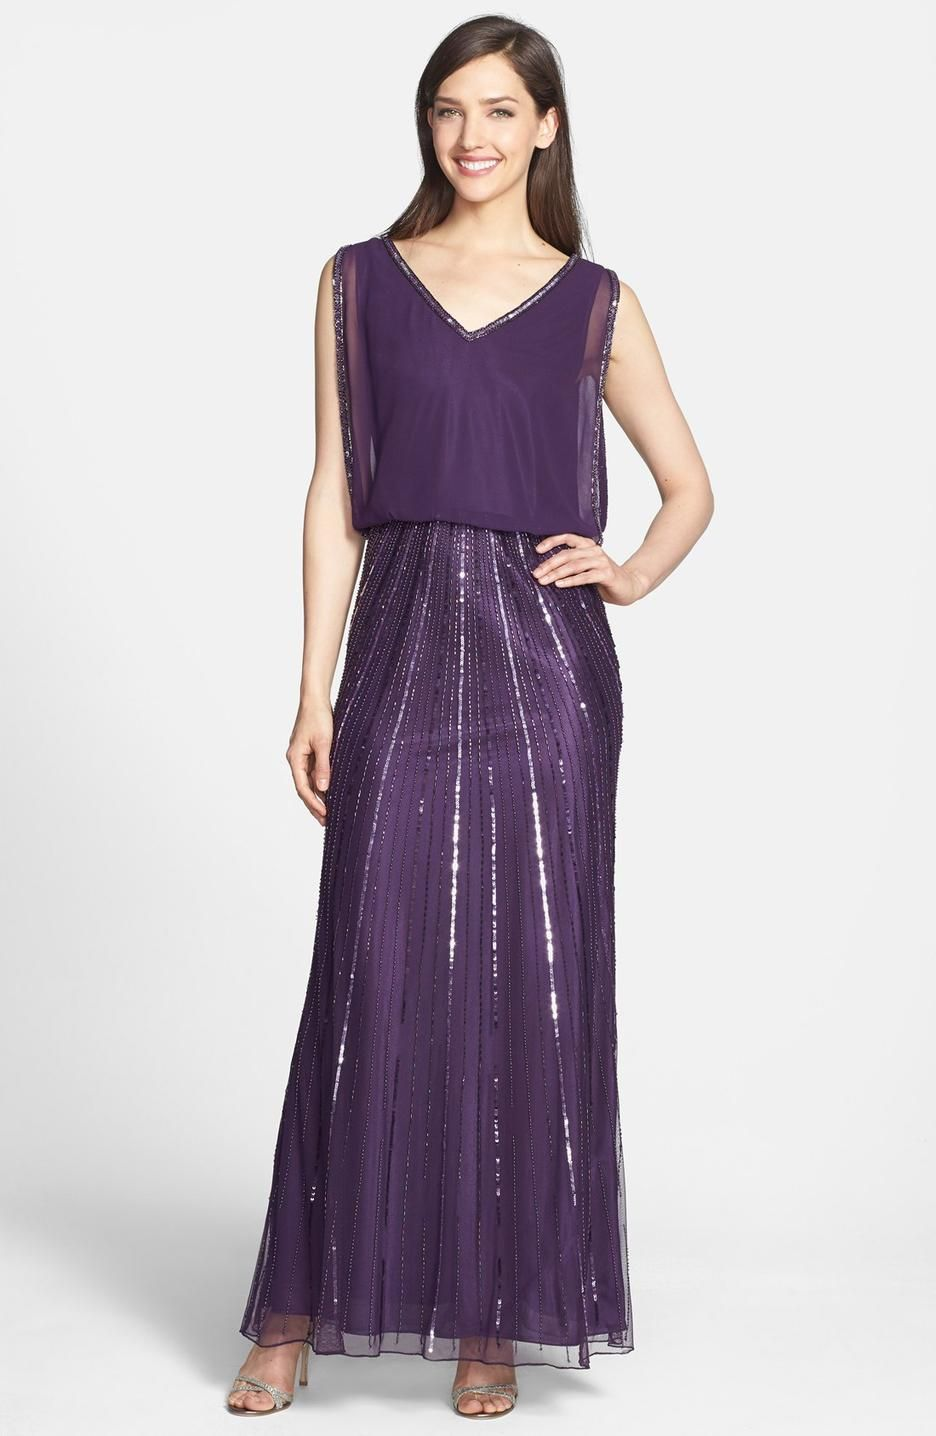 J Kara Embellished Mock Two-Piece Gown | Zyla Iridescent/Dusky ...